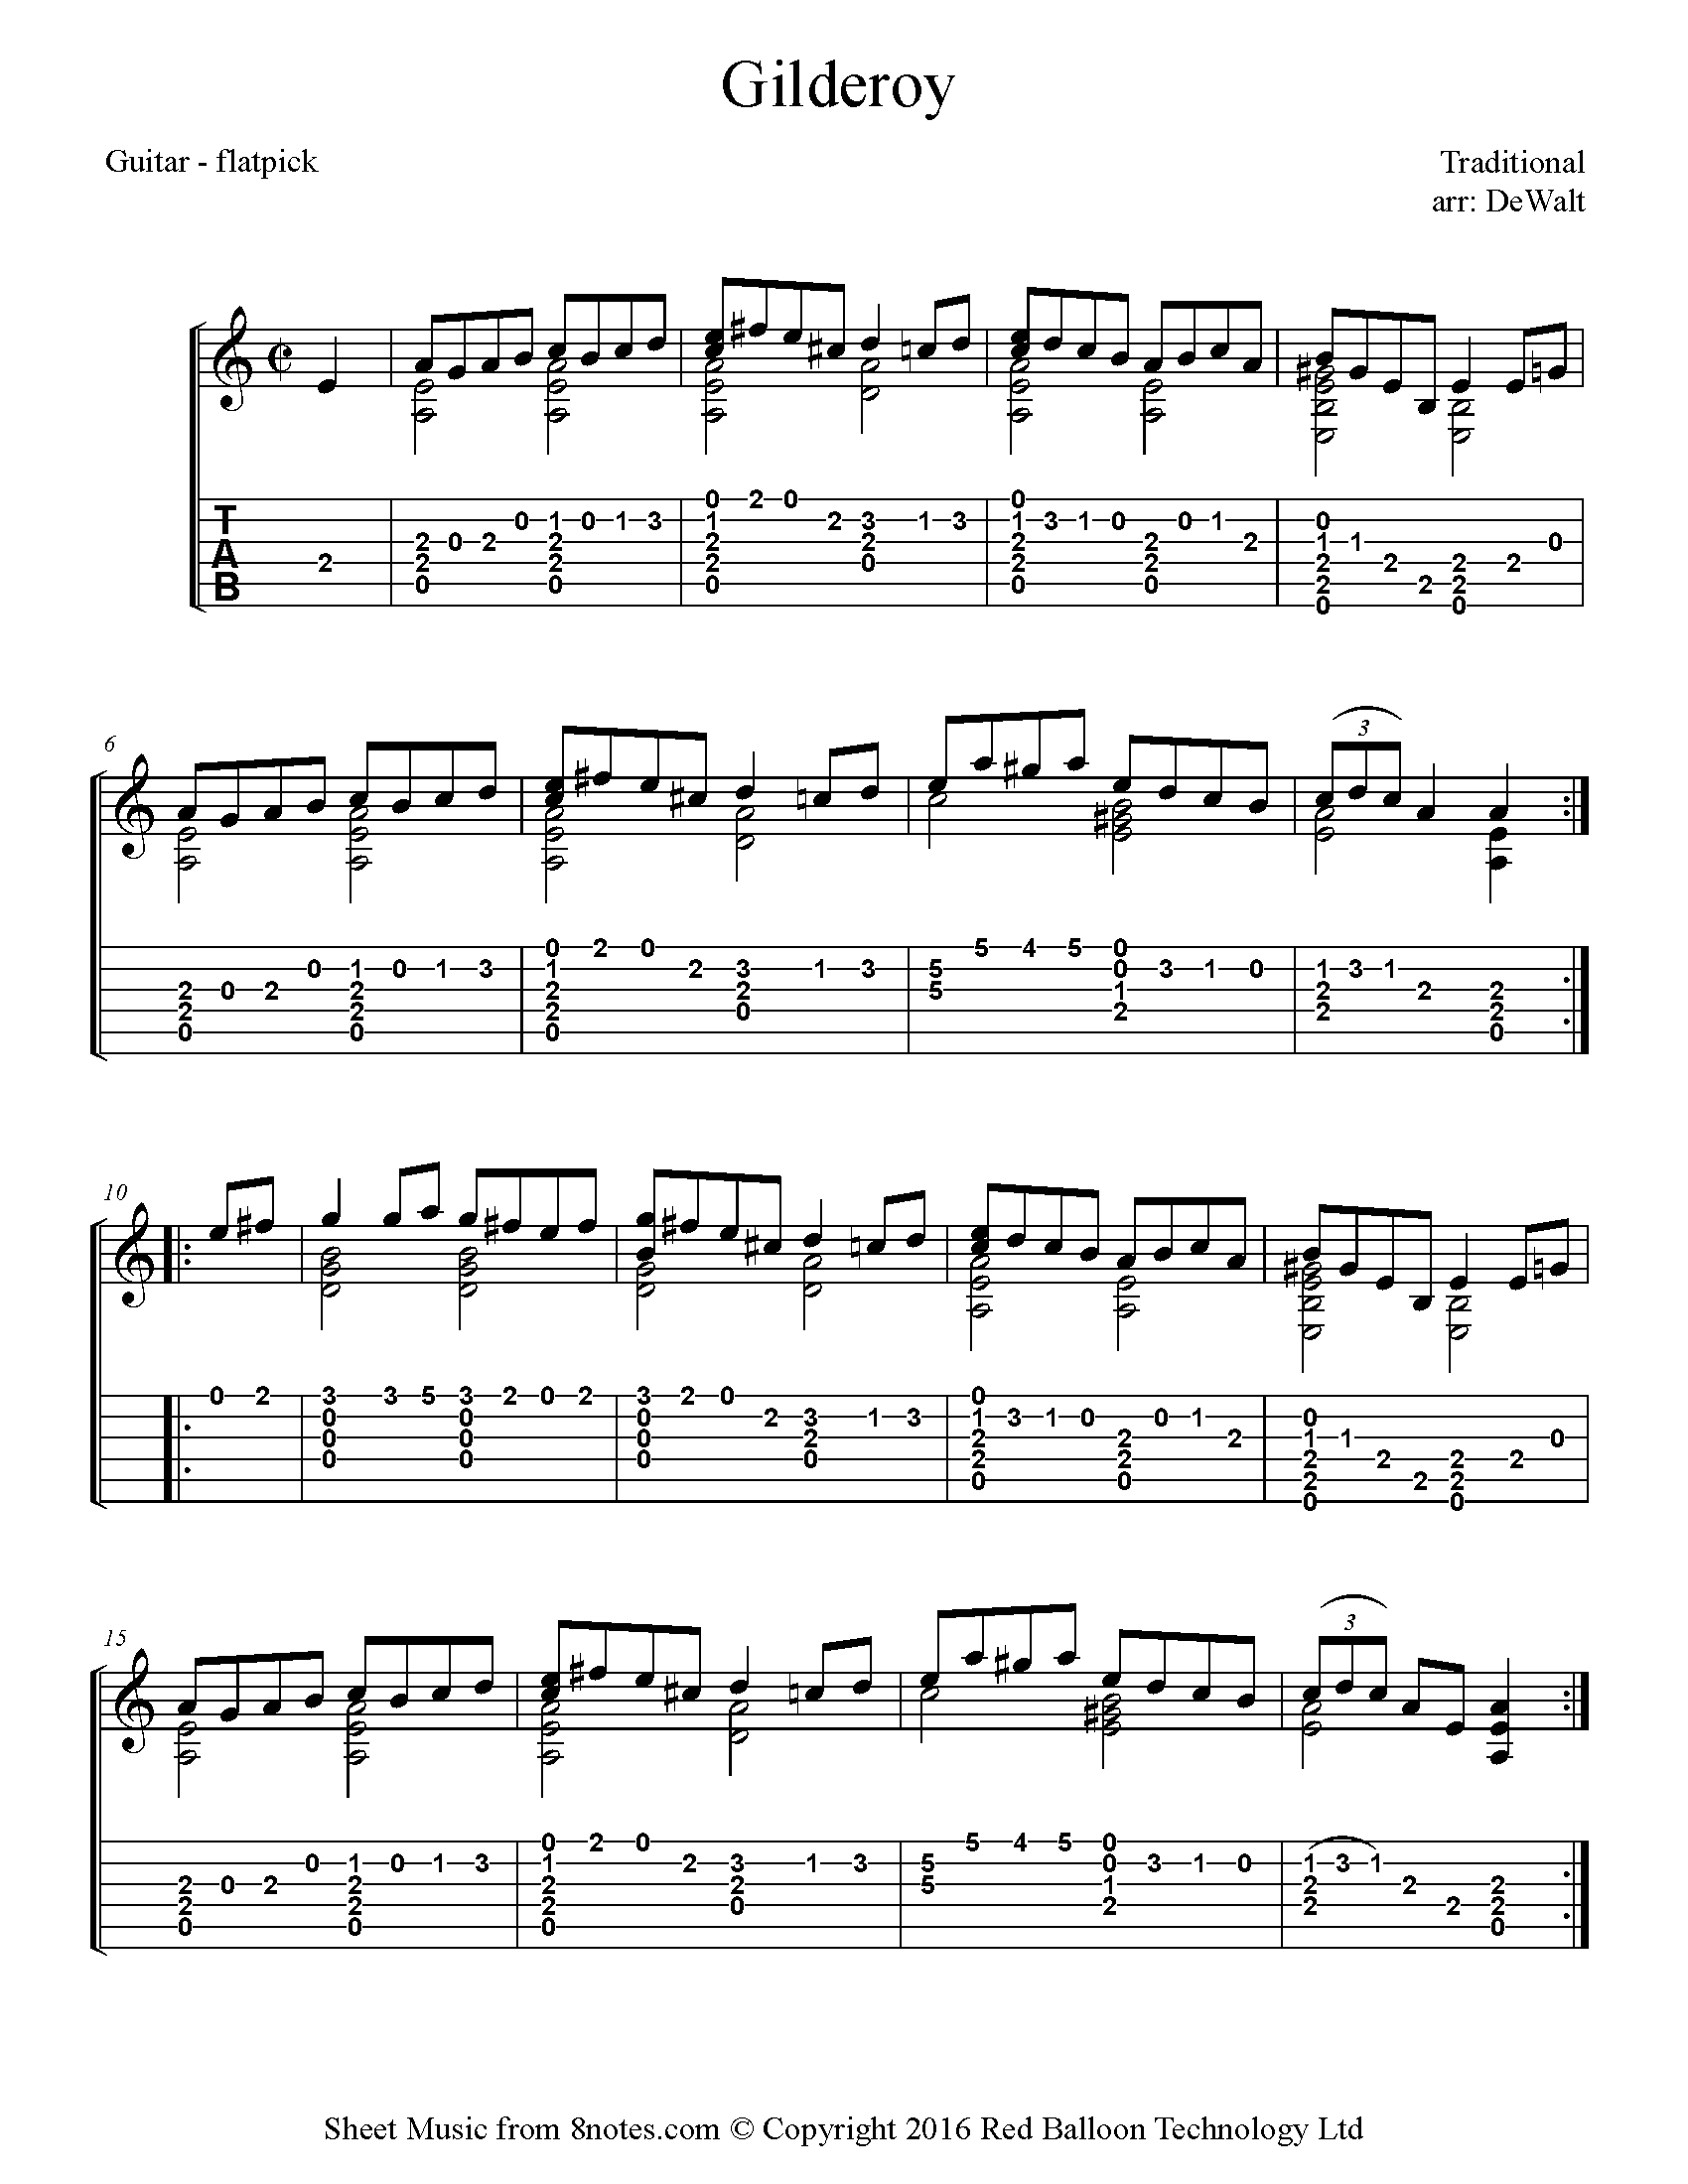 Free Guitar Sheet Music Lessons Resources 8notes